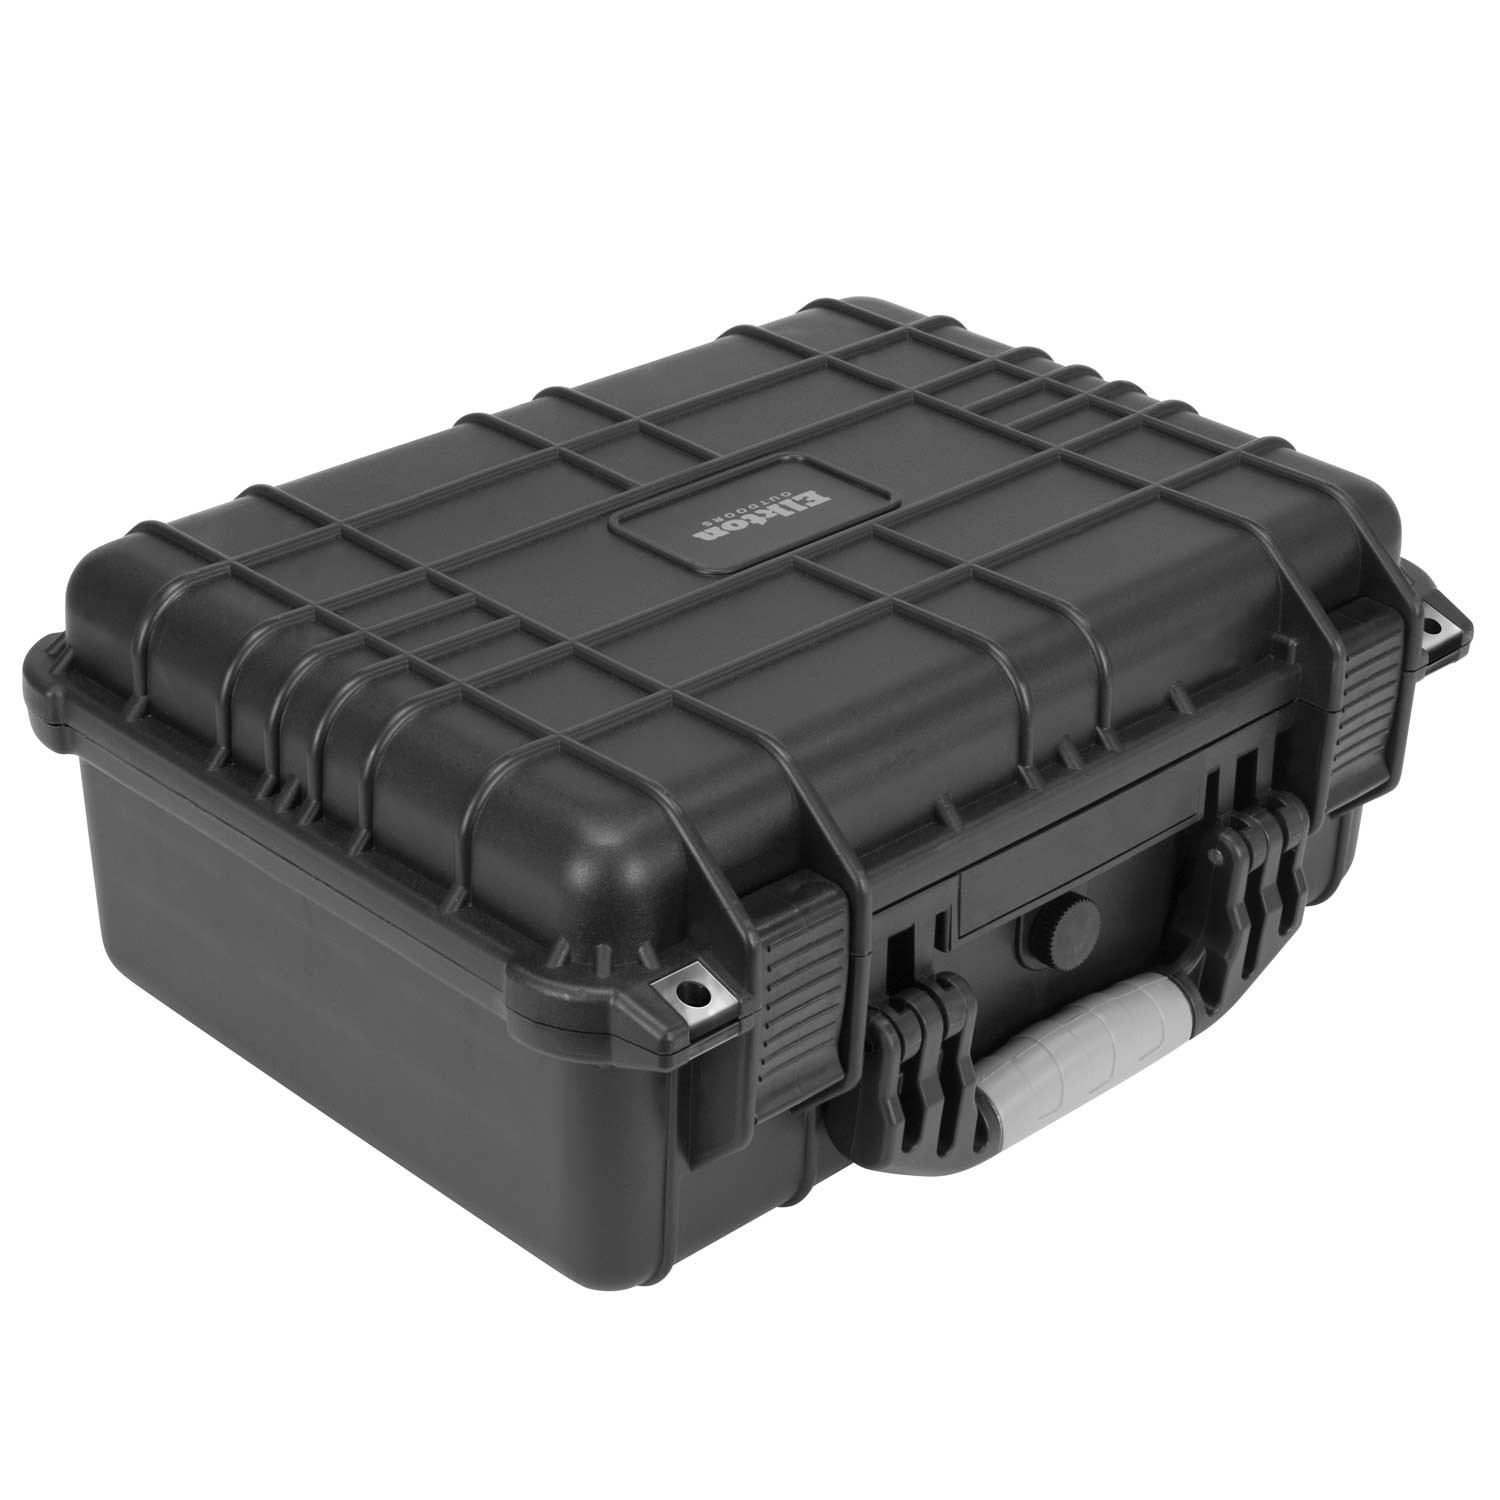 Elkton Outdoors Hard Gun Case: Fully Customizable Pistol Case: Holds 4 Handguns and 8 Magazines: Crush Resistant & Waterproof! by Elkton Outdoors (Image #3)